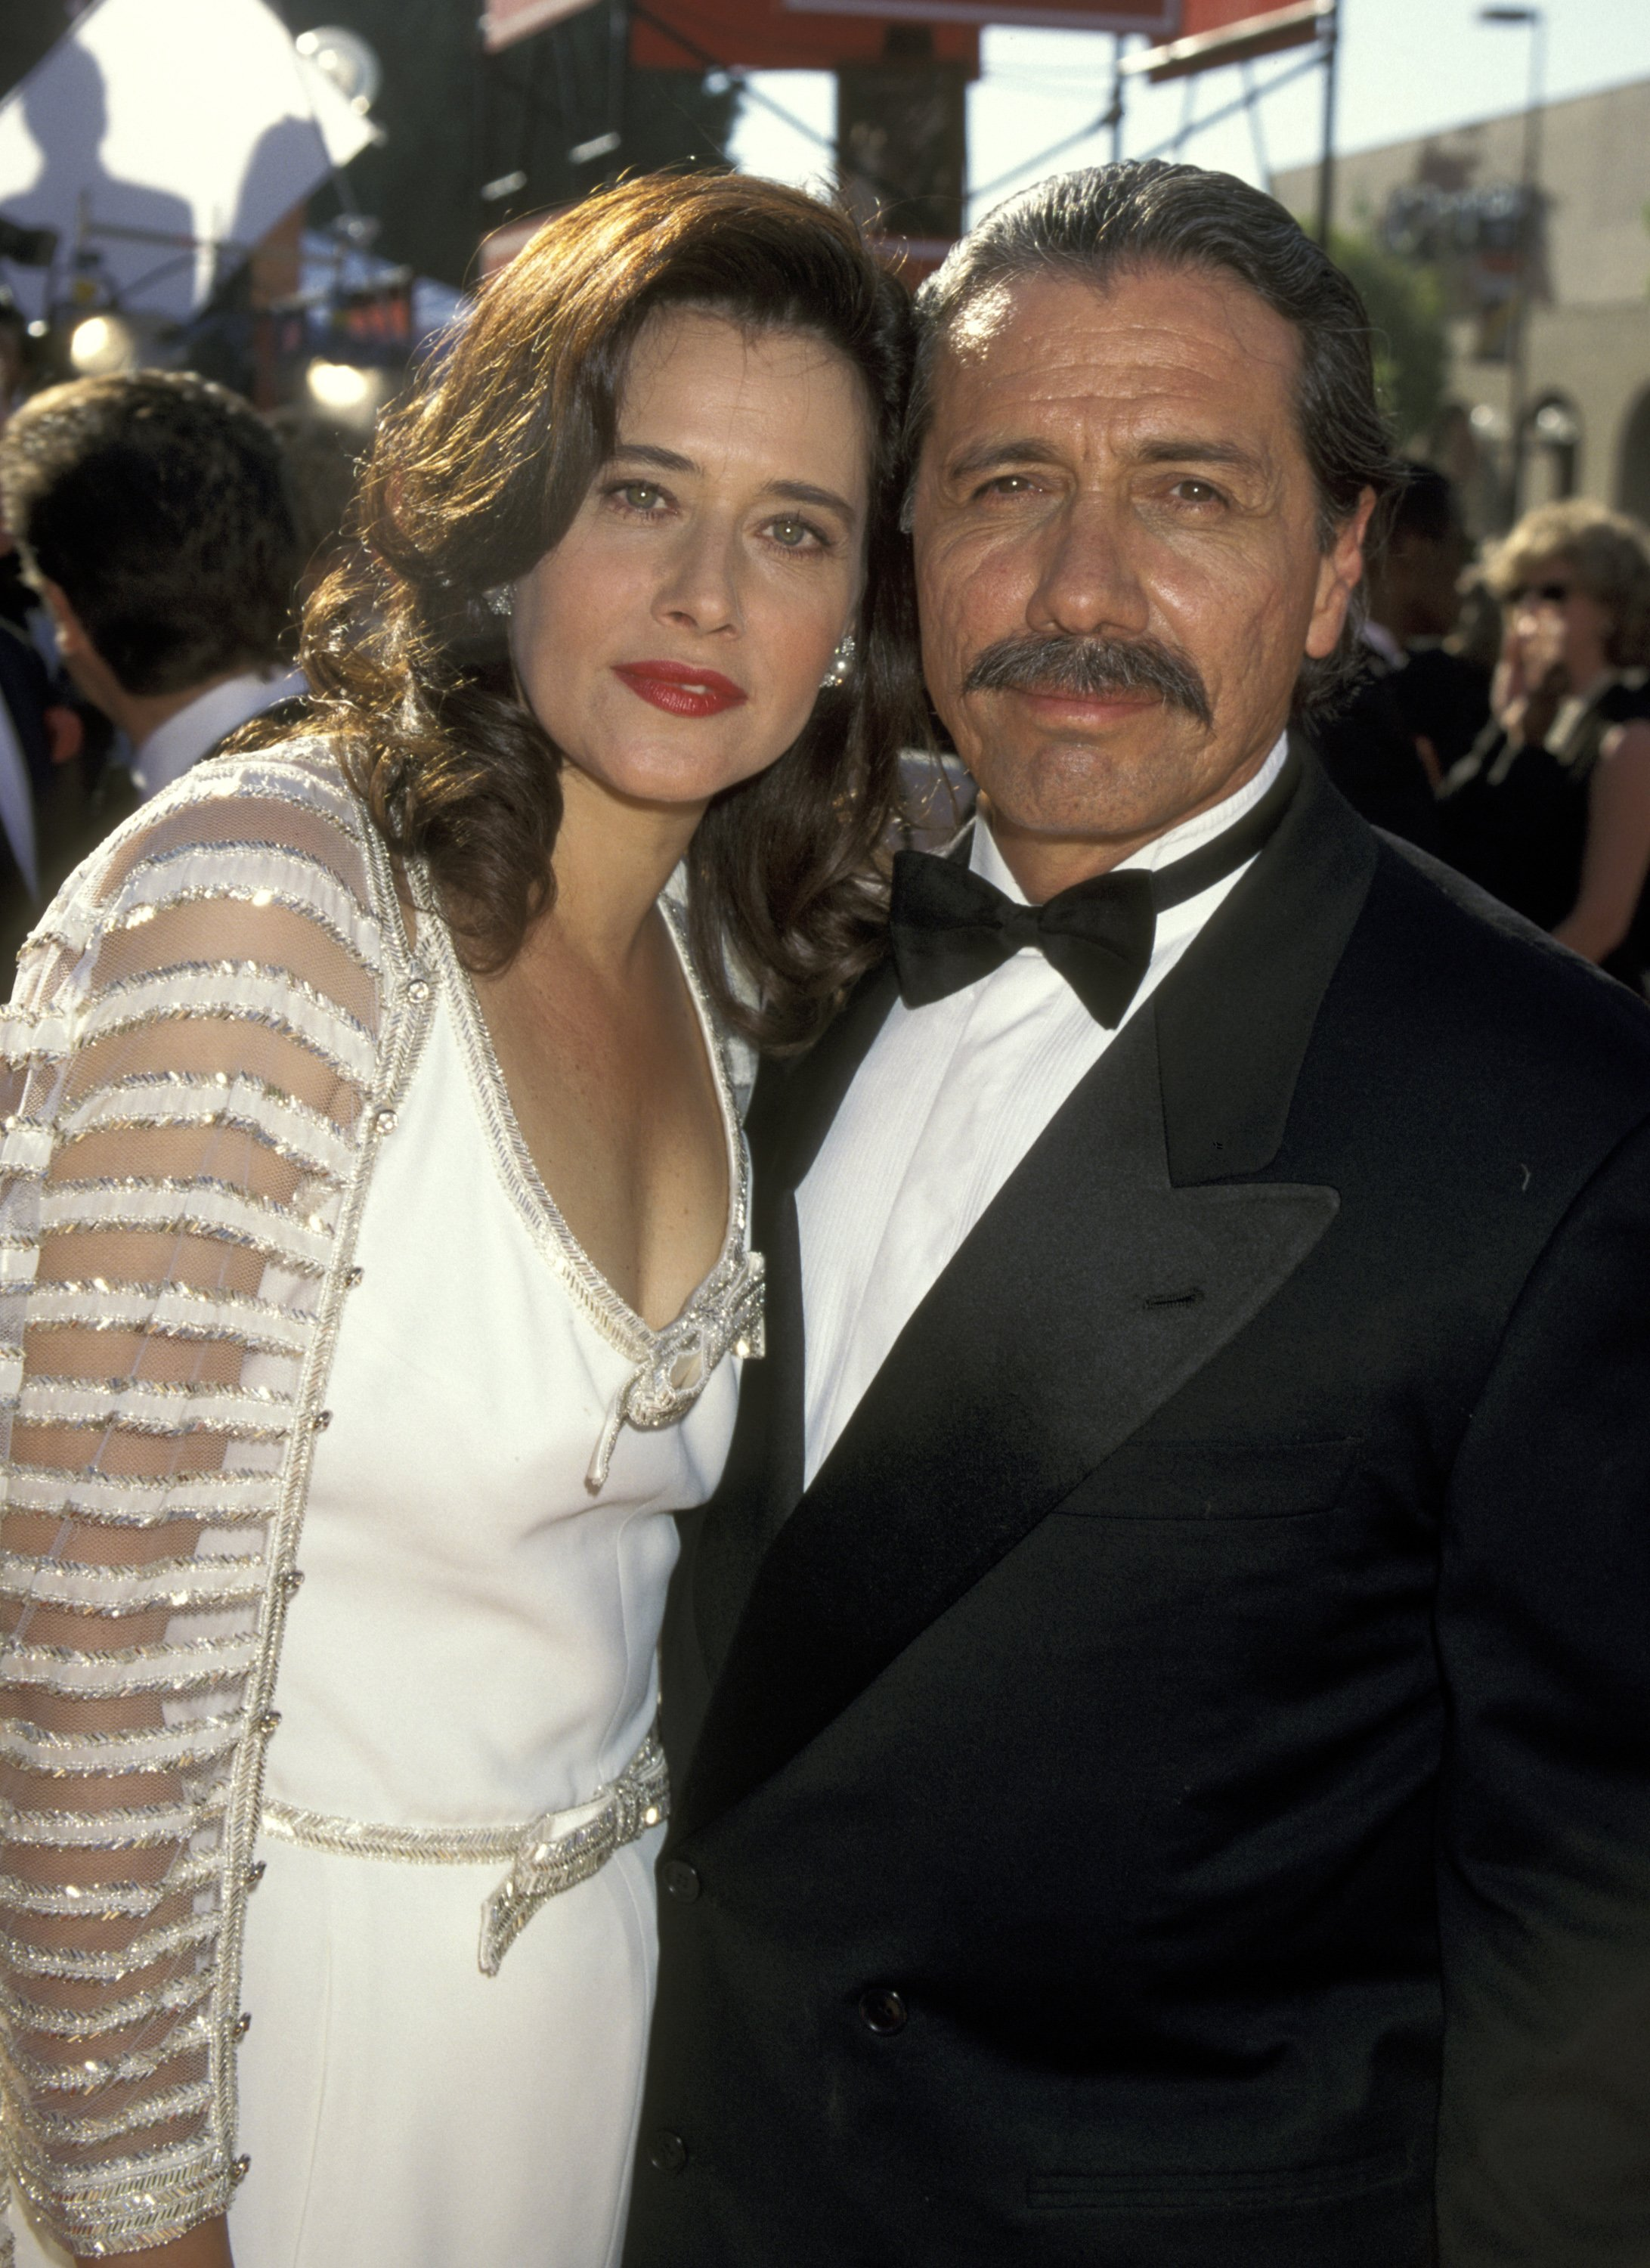 Lorraine Bracco and Edward James Olmos at the 47th Annual Primetime Emmy Awards, September 1995 | Photo: Getty Images